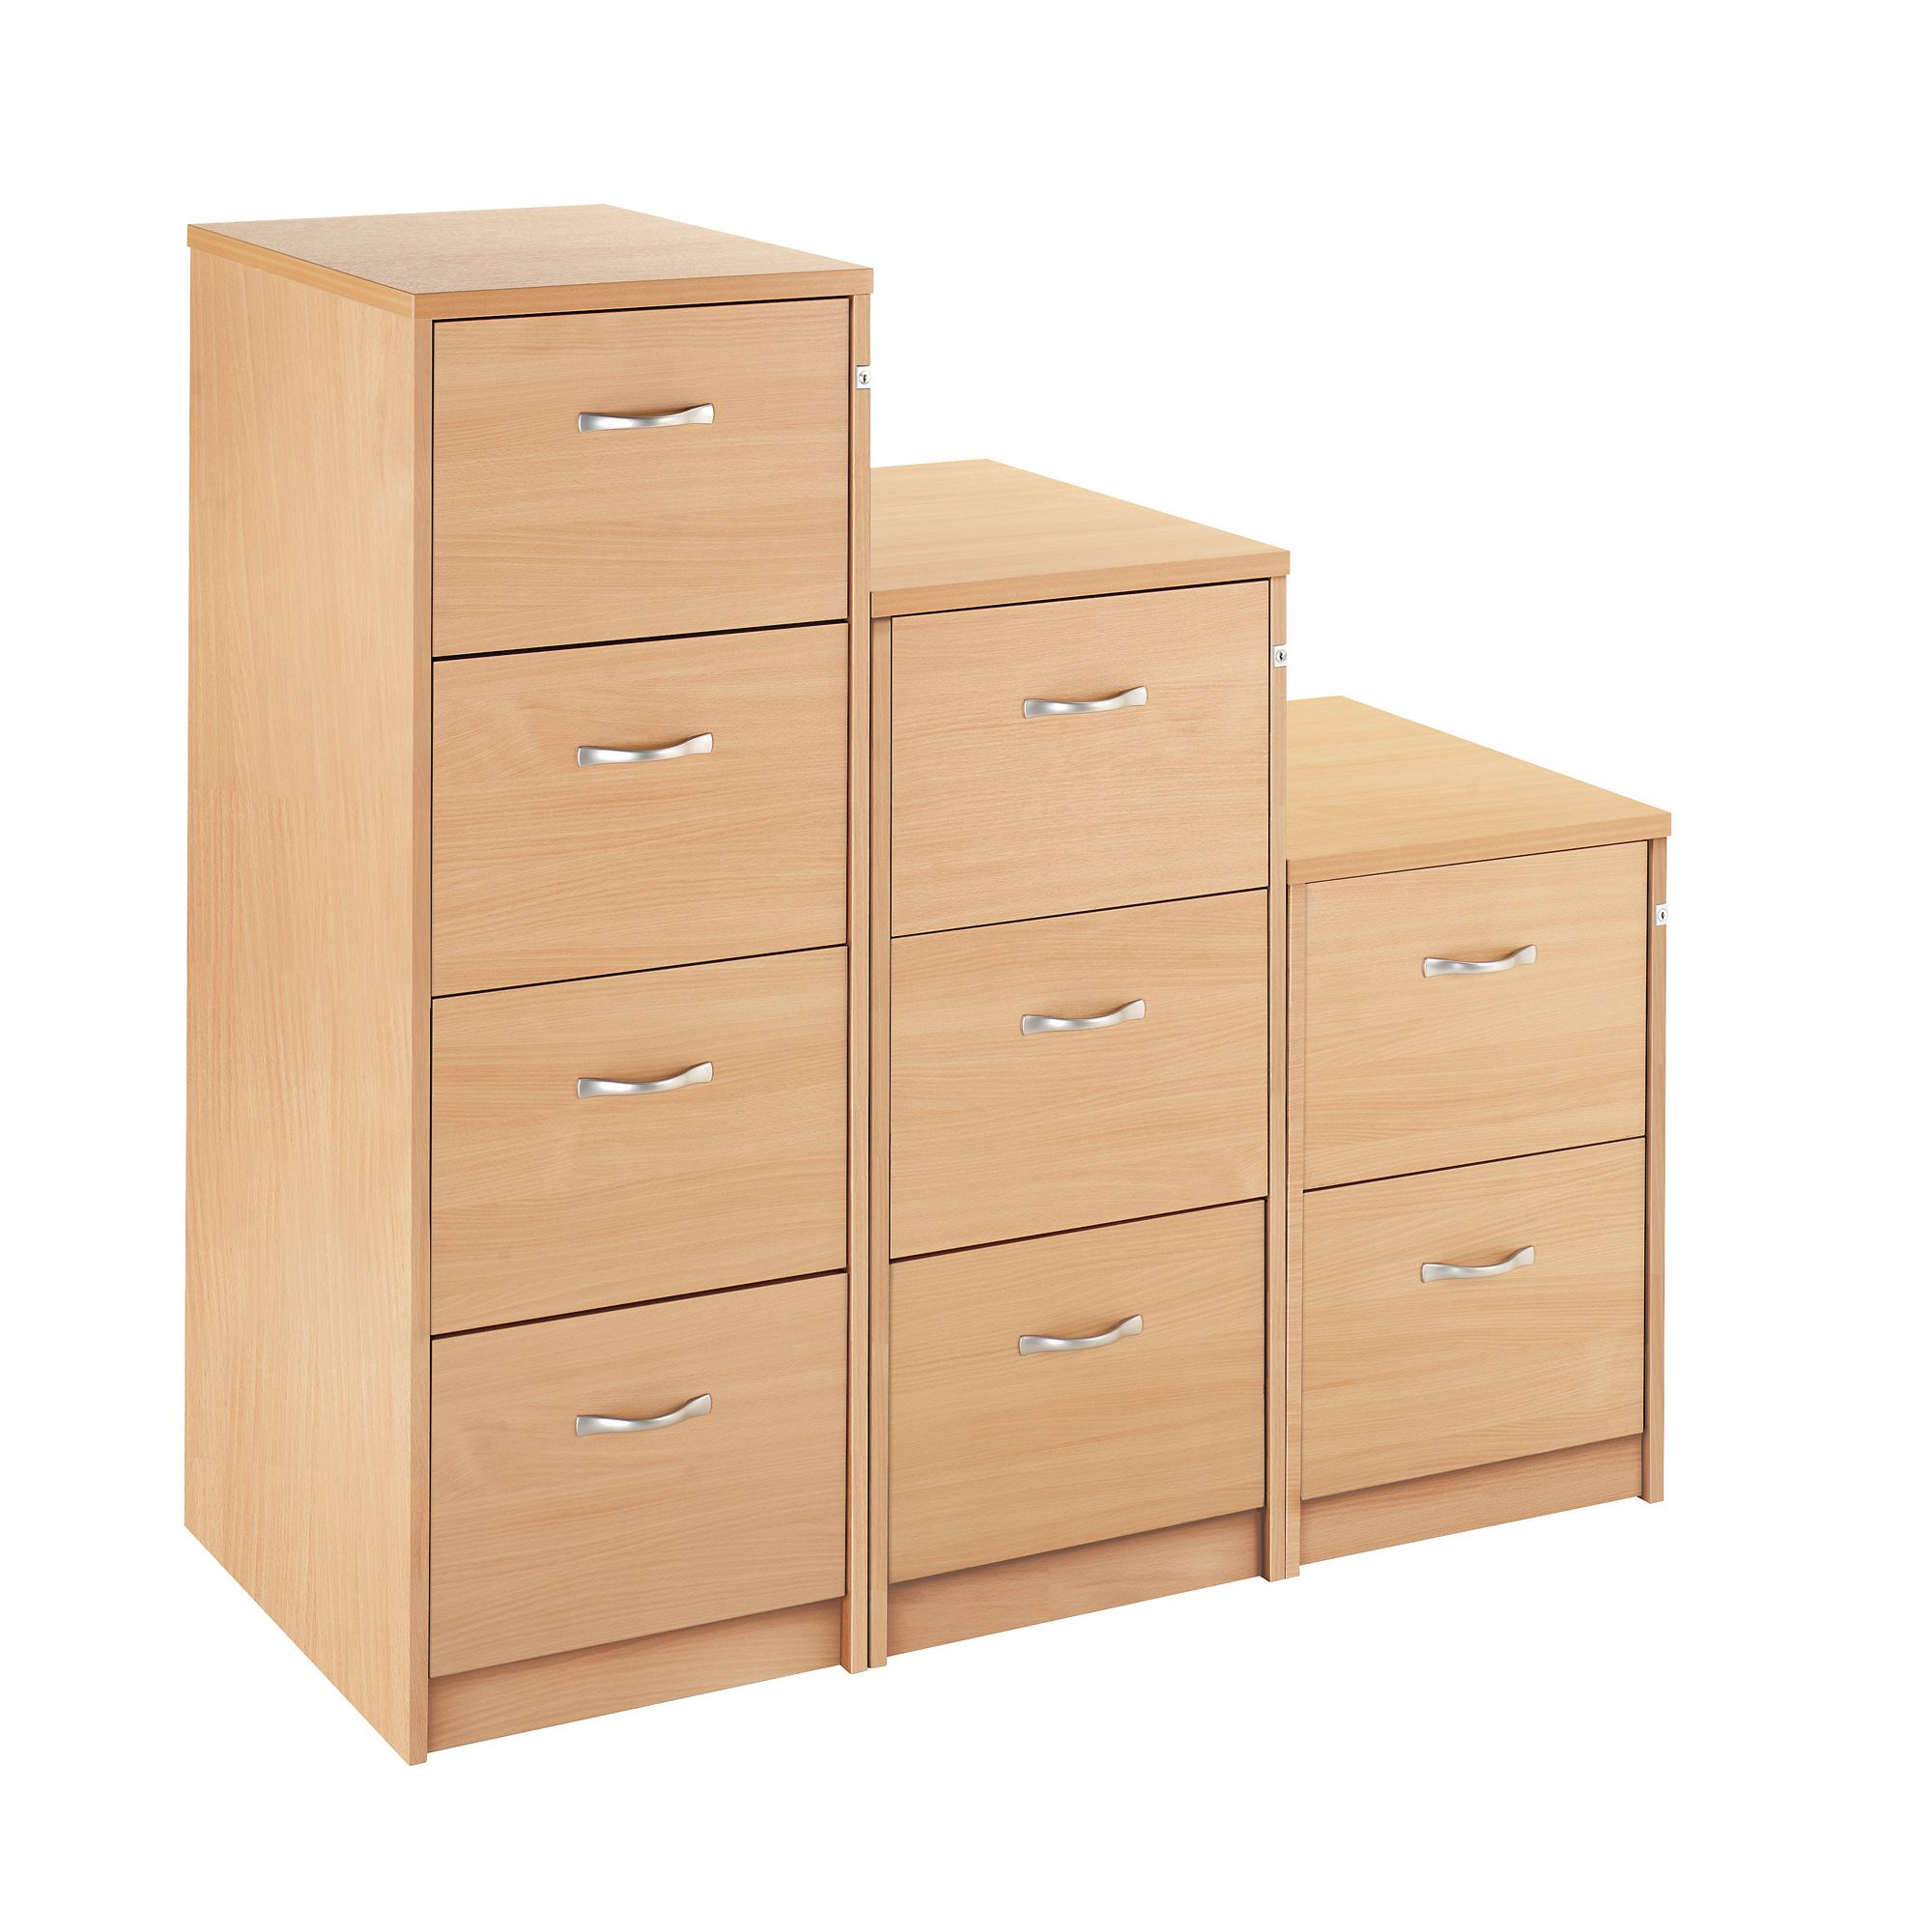 CM Wooden Filing Cabinet 3 Draw Beech